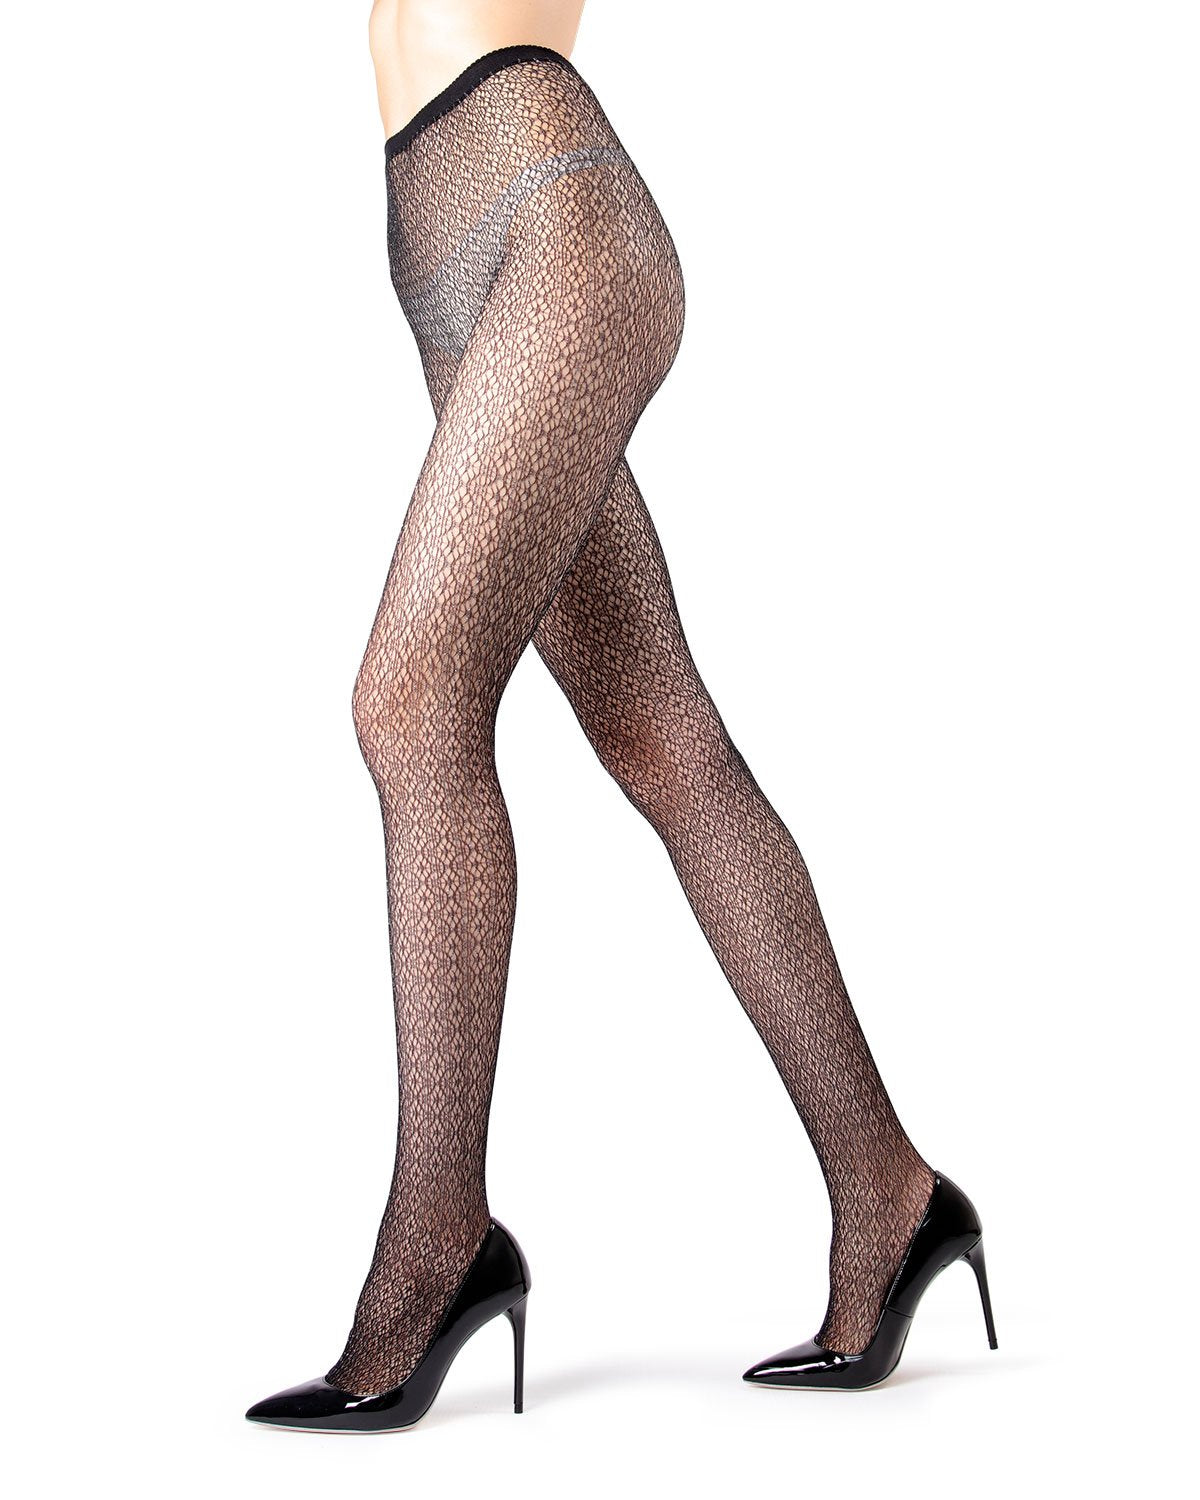 Crochet Lurex Net Tights